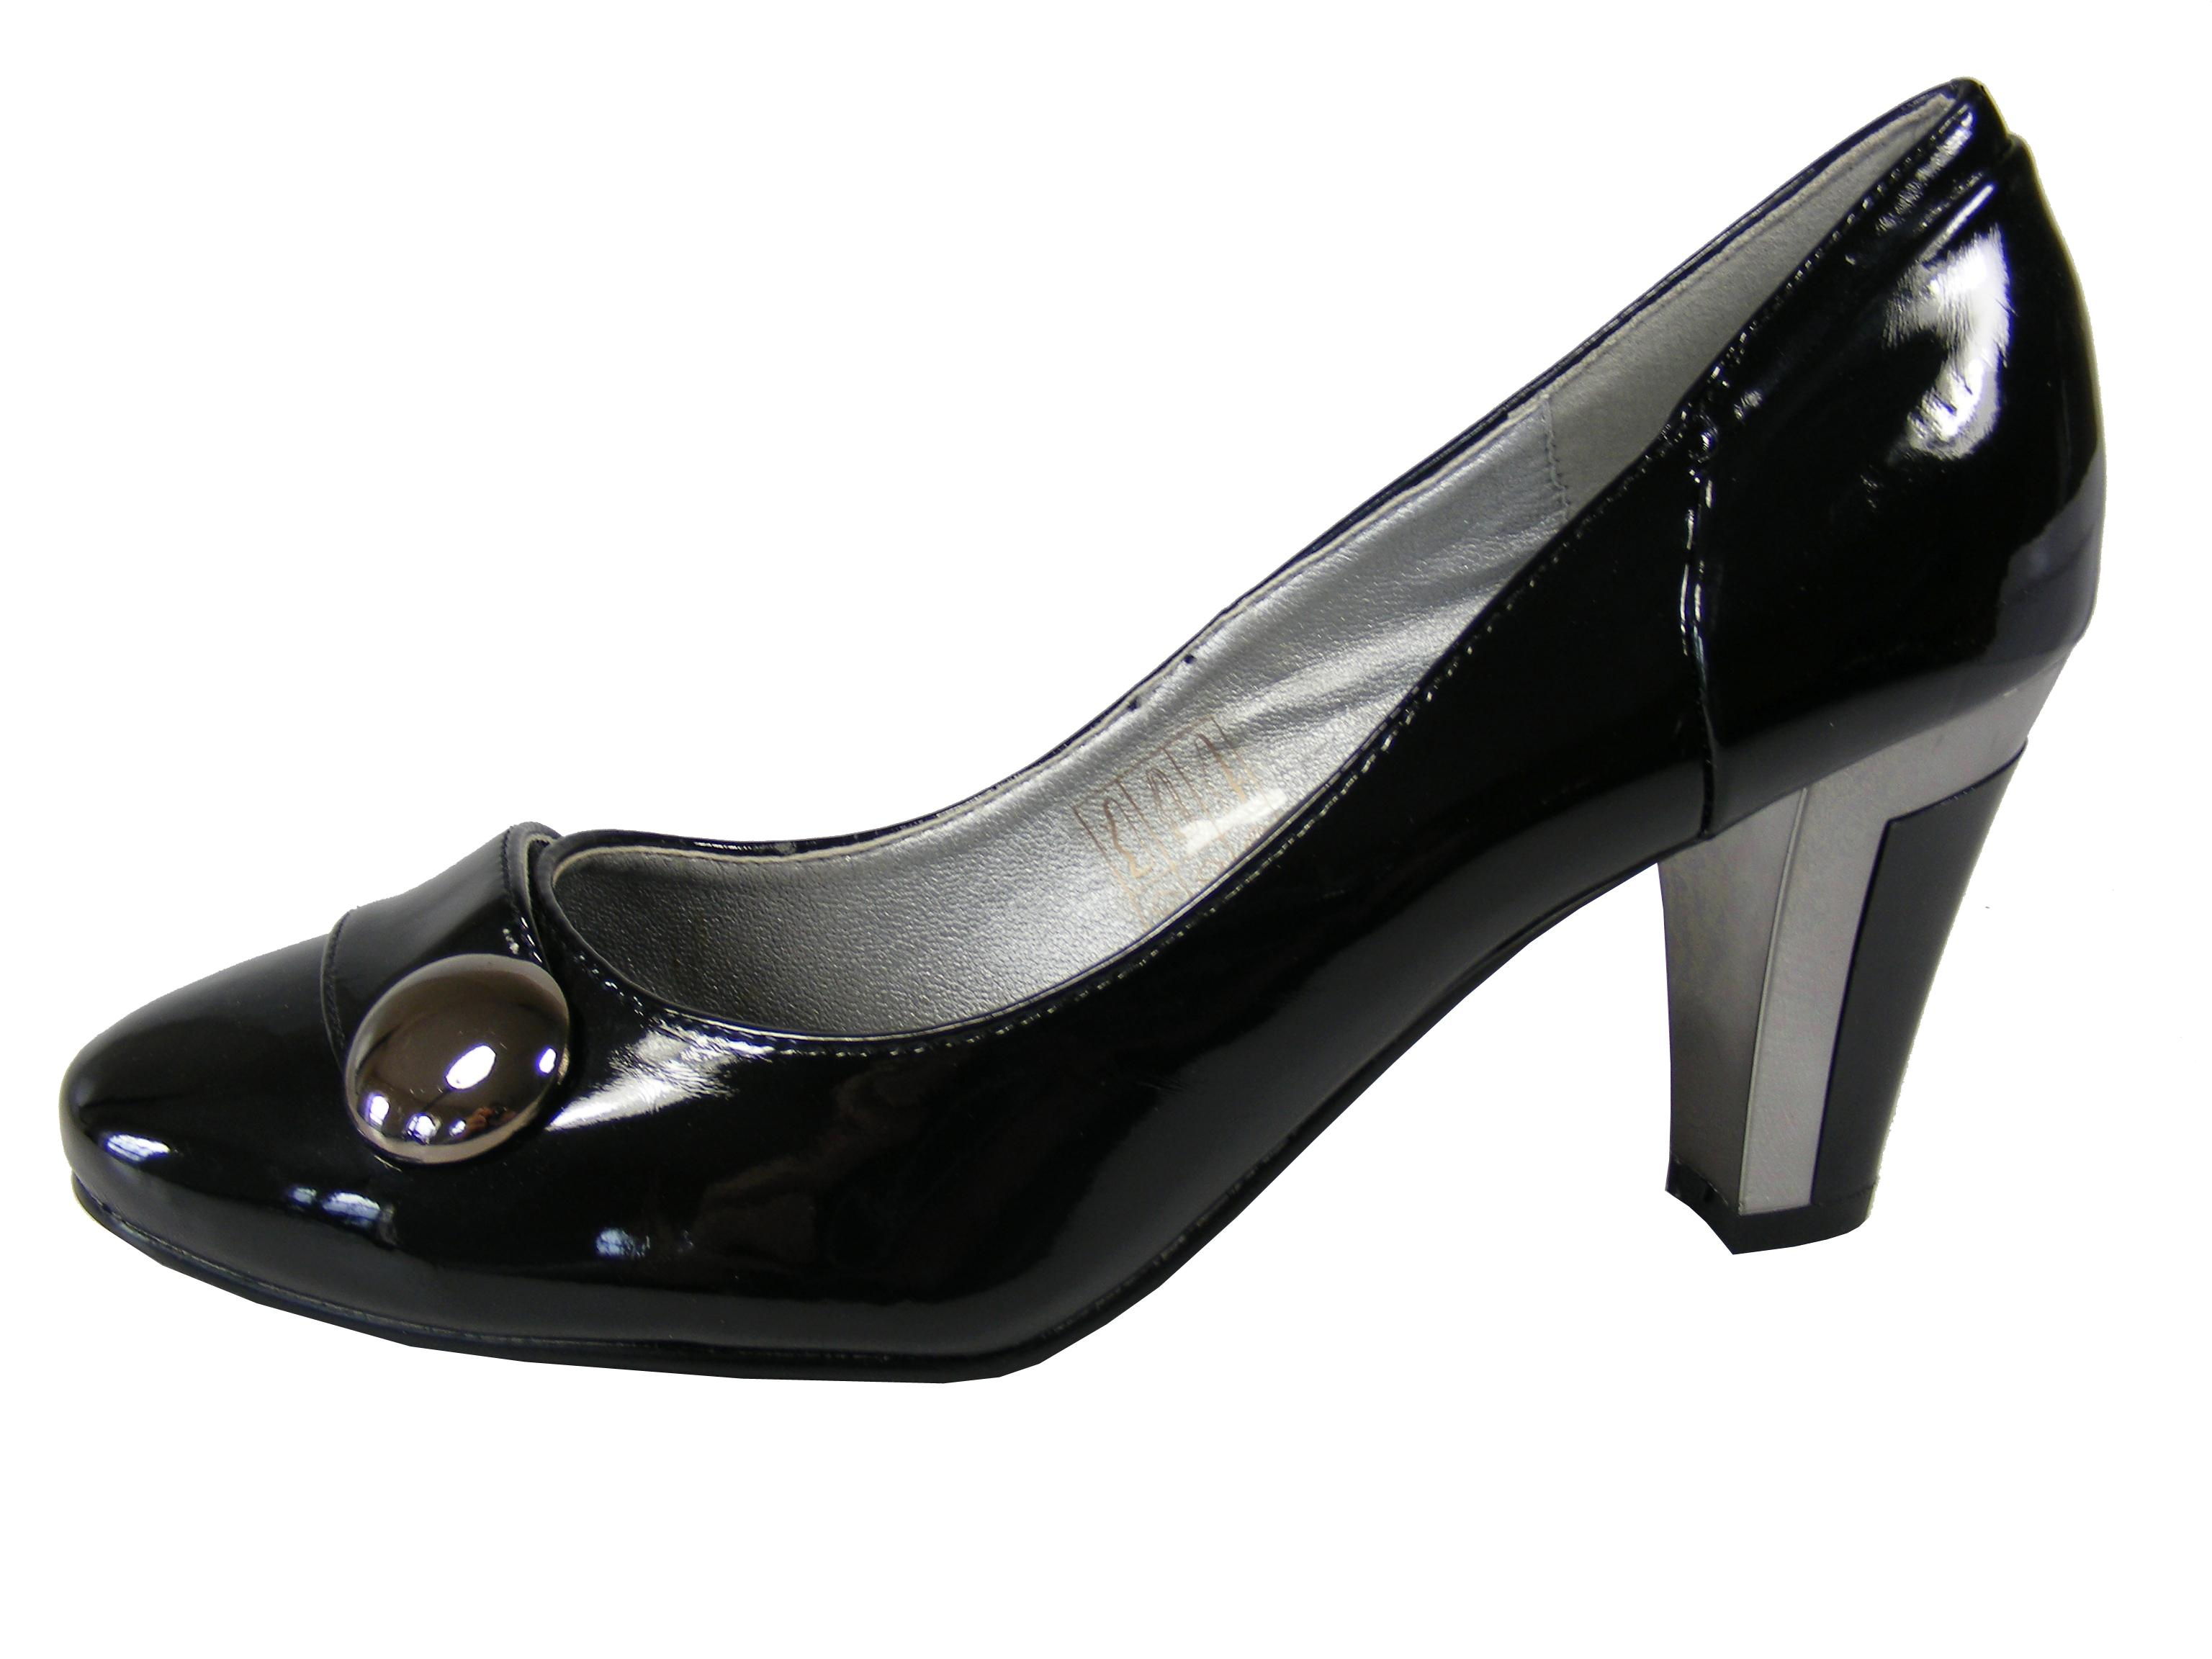 NEW Womens Ladies Black Shiny Button Work Mid Heel Formal Court ...